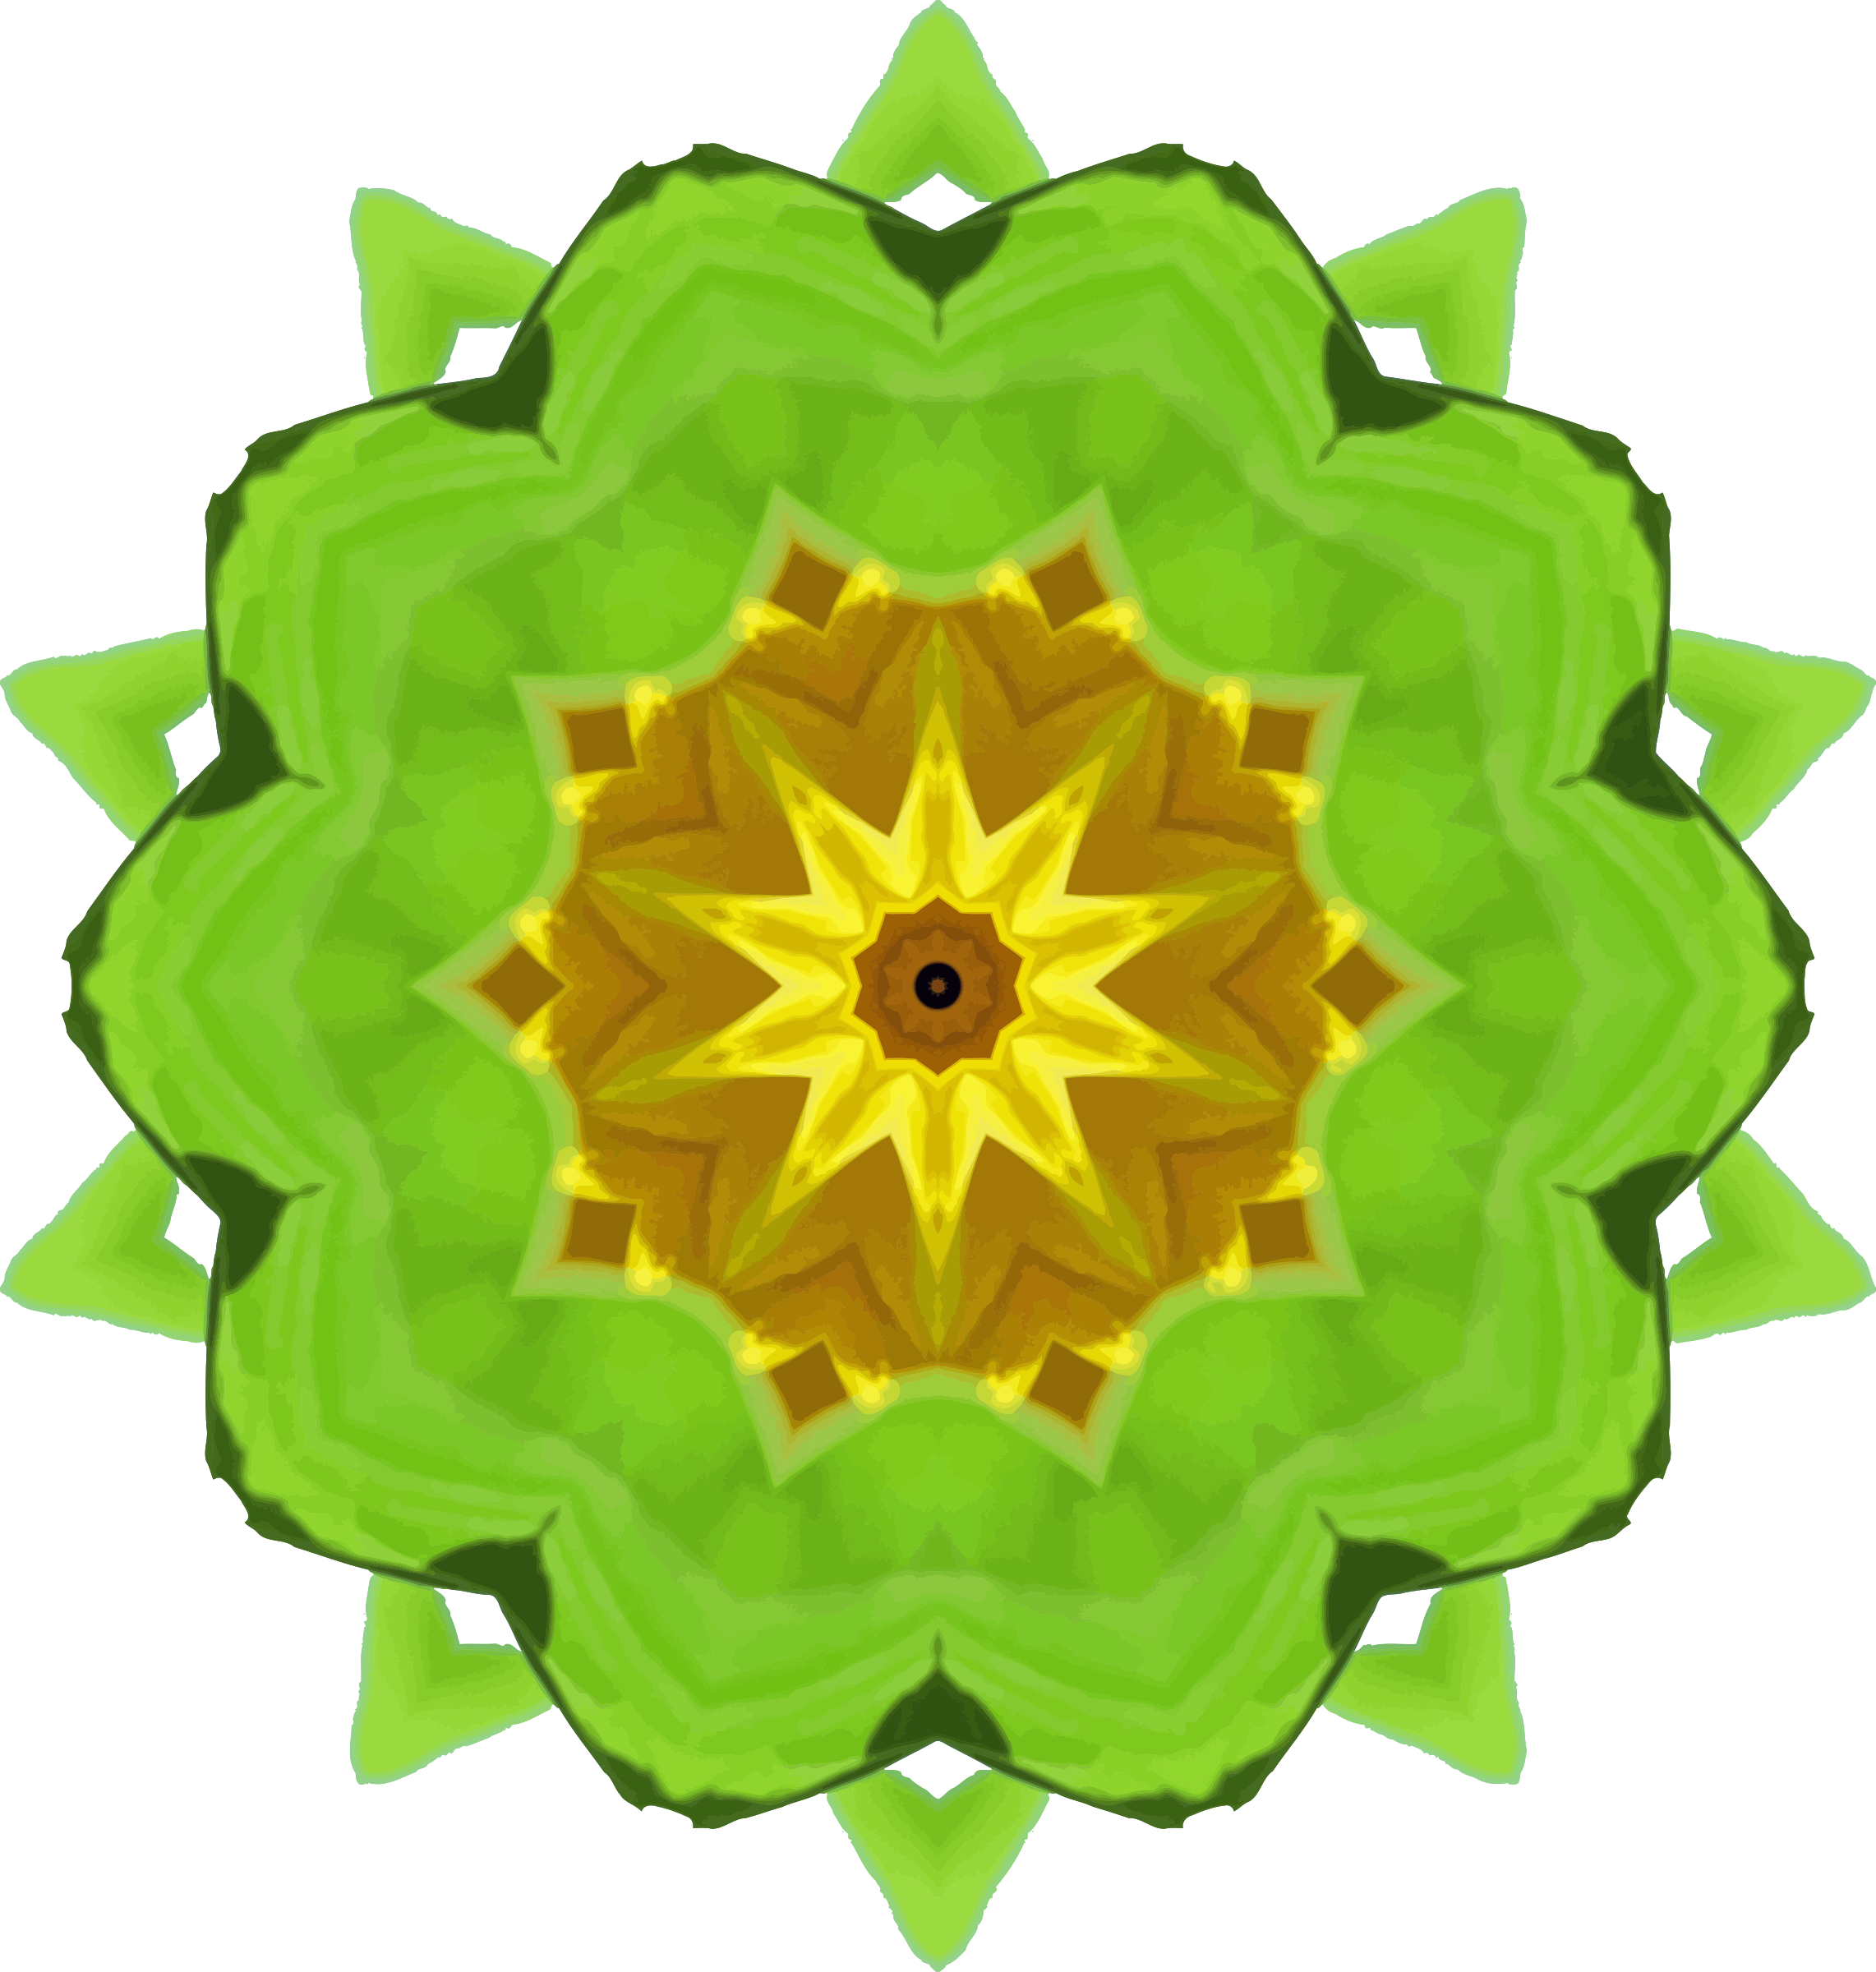 Sunflower kaleidoscope 7 by Firkin